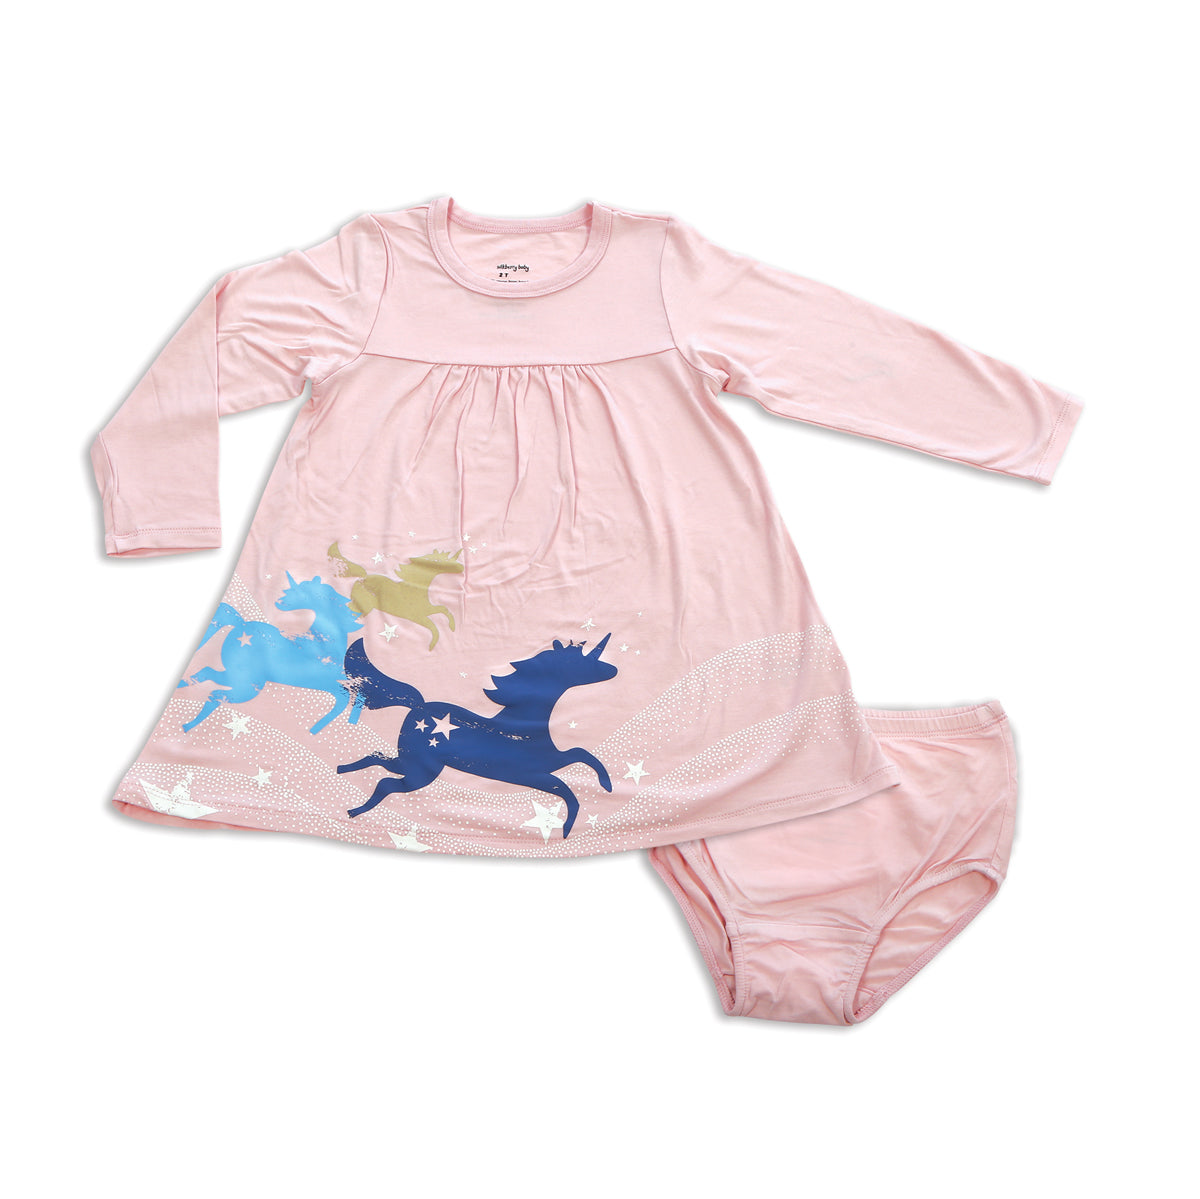 Bamboo Empire Dress (Pink Cloud) with Bloomer